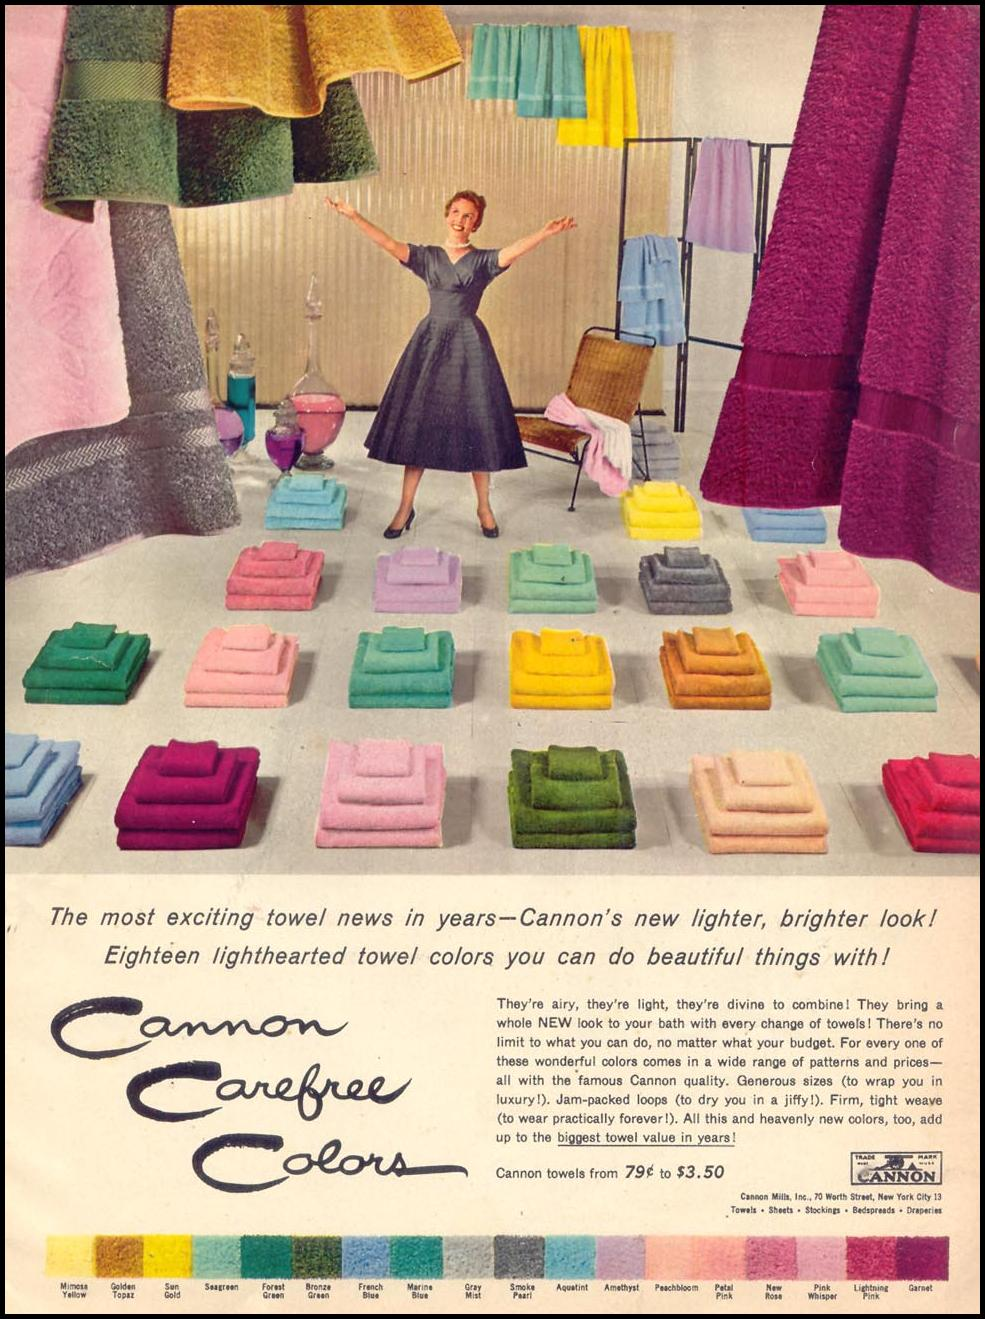 CANNON TOWELS WOMAN'S DAY 10/01/1954 p. 17